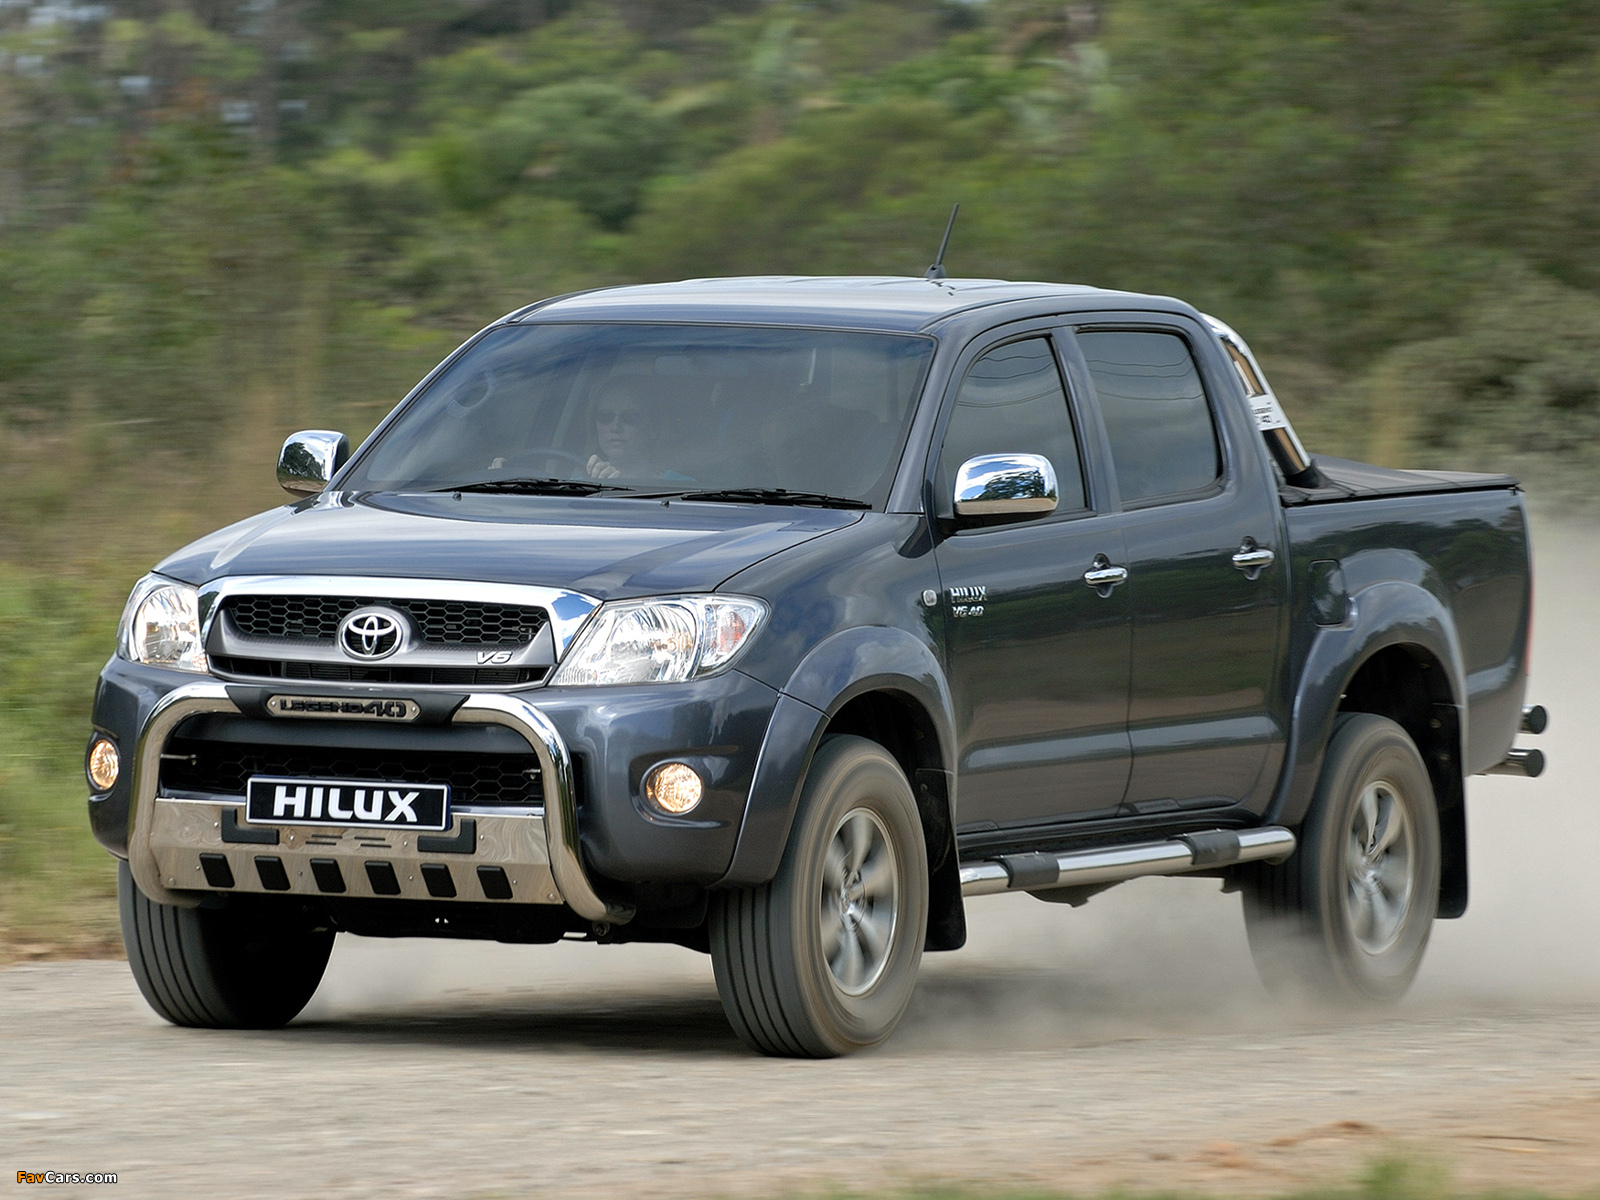 Toyota Hilux Legend 40 Double Cab 2010 Wallpapers 1600x1200